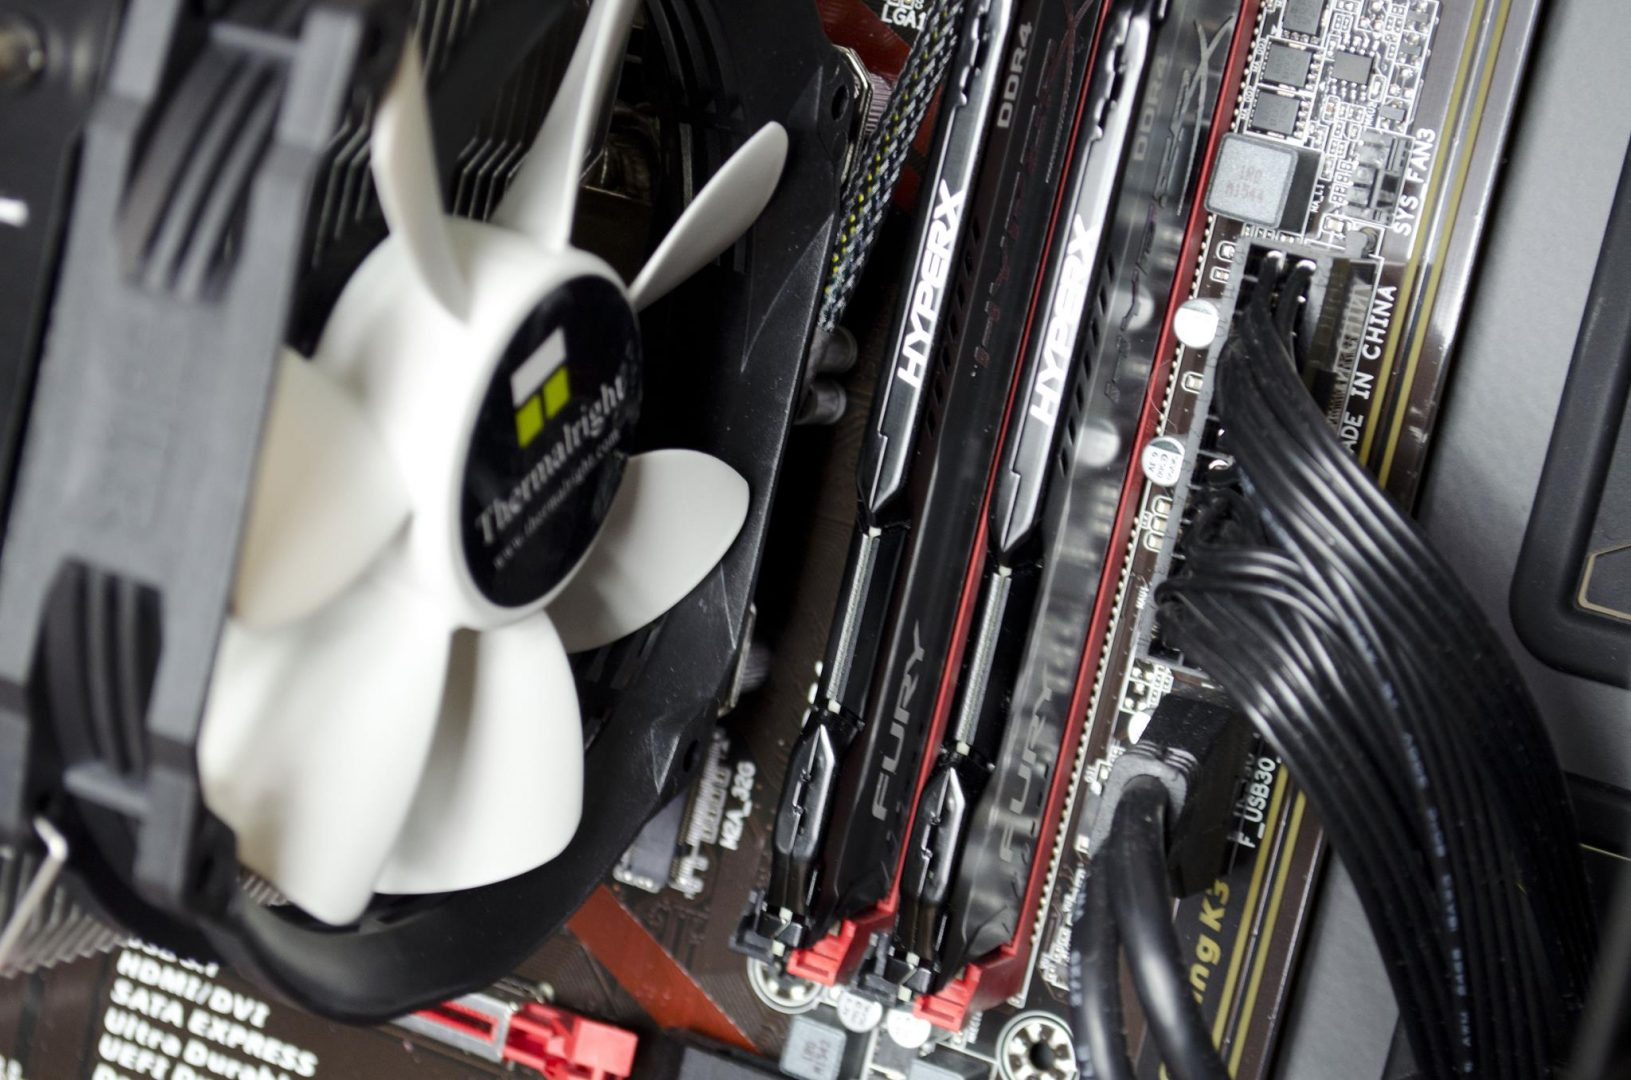 thermalright-macho-120-sbm-cpu-cooler-review-_18